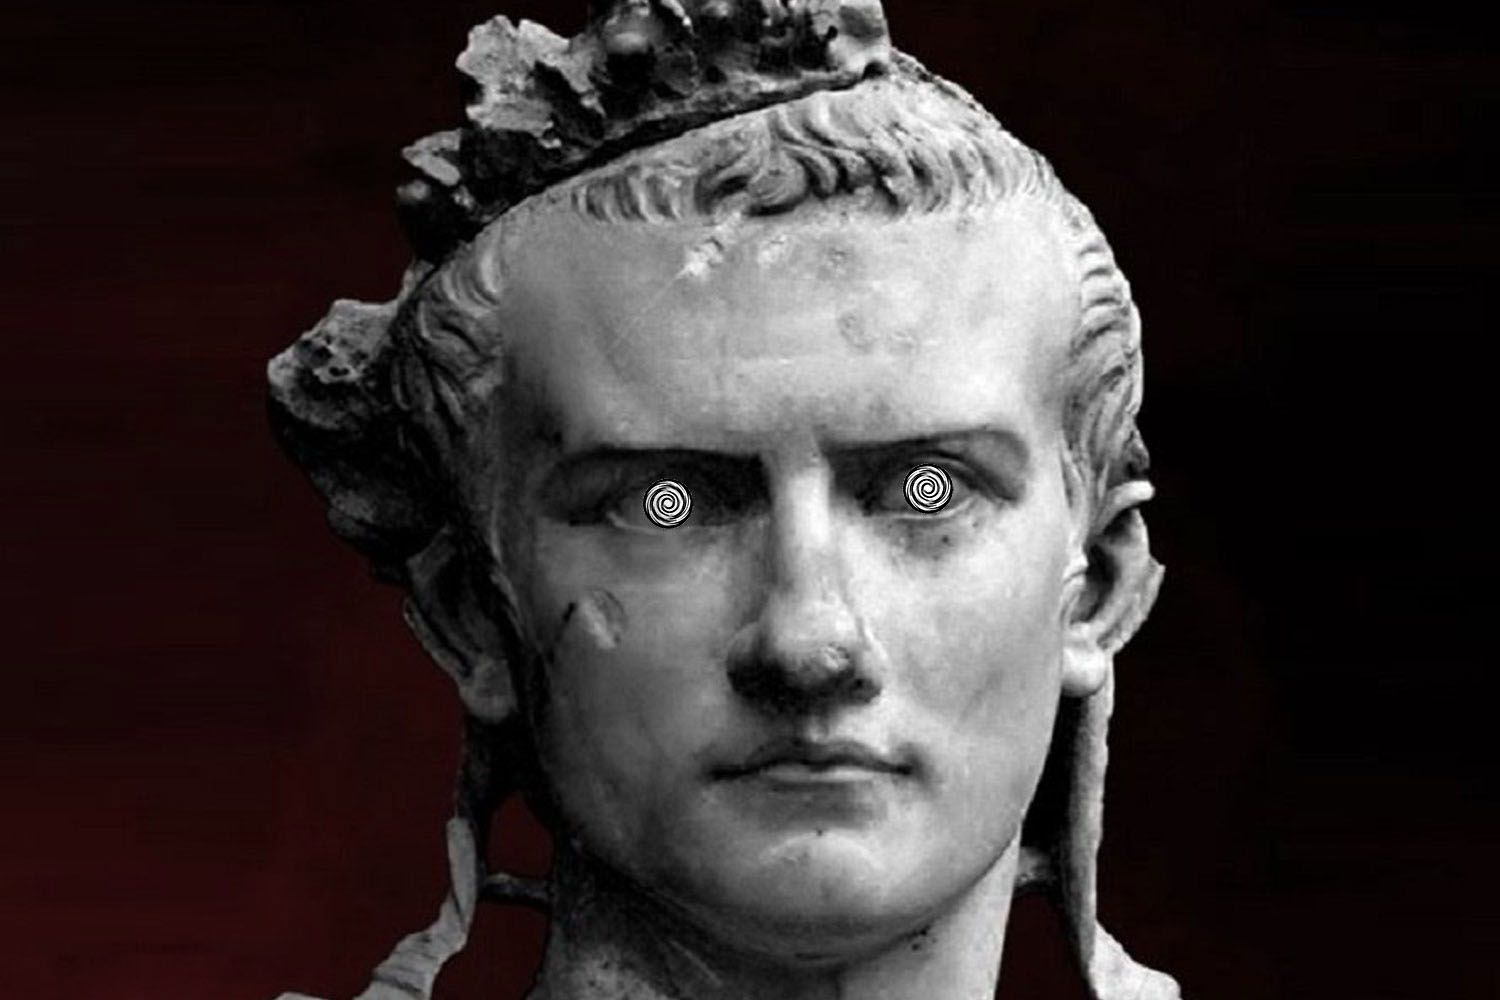 Power tends to corrupt, and absolute power corrupts absolutely, and if you add a touch of sexual perversion, and a twist of insanity you begin to paint a reasonable picture of Caligula who was the third Roman emperor, ruling from AD 37 to 41.